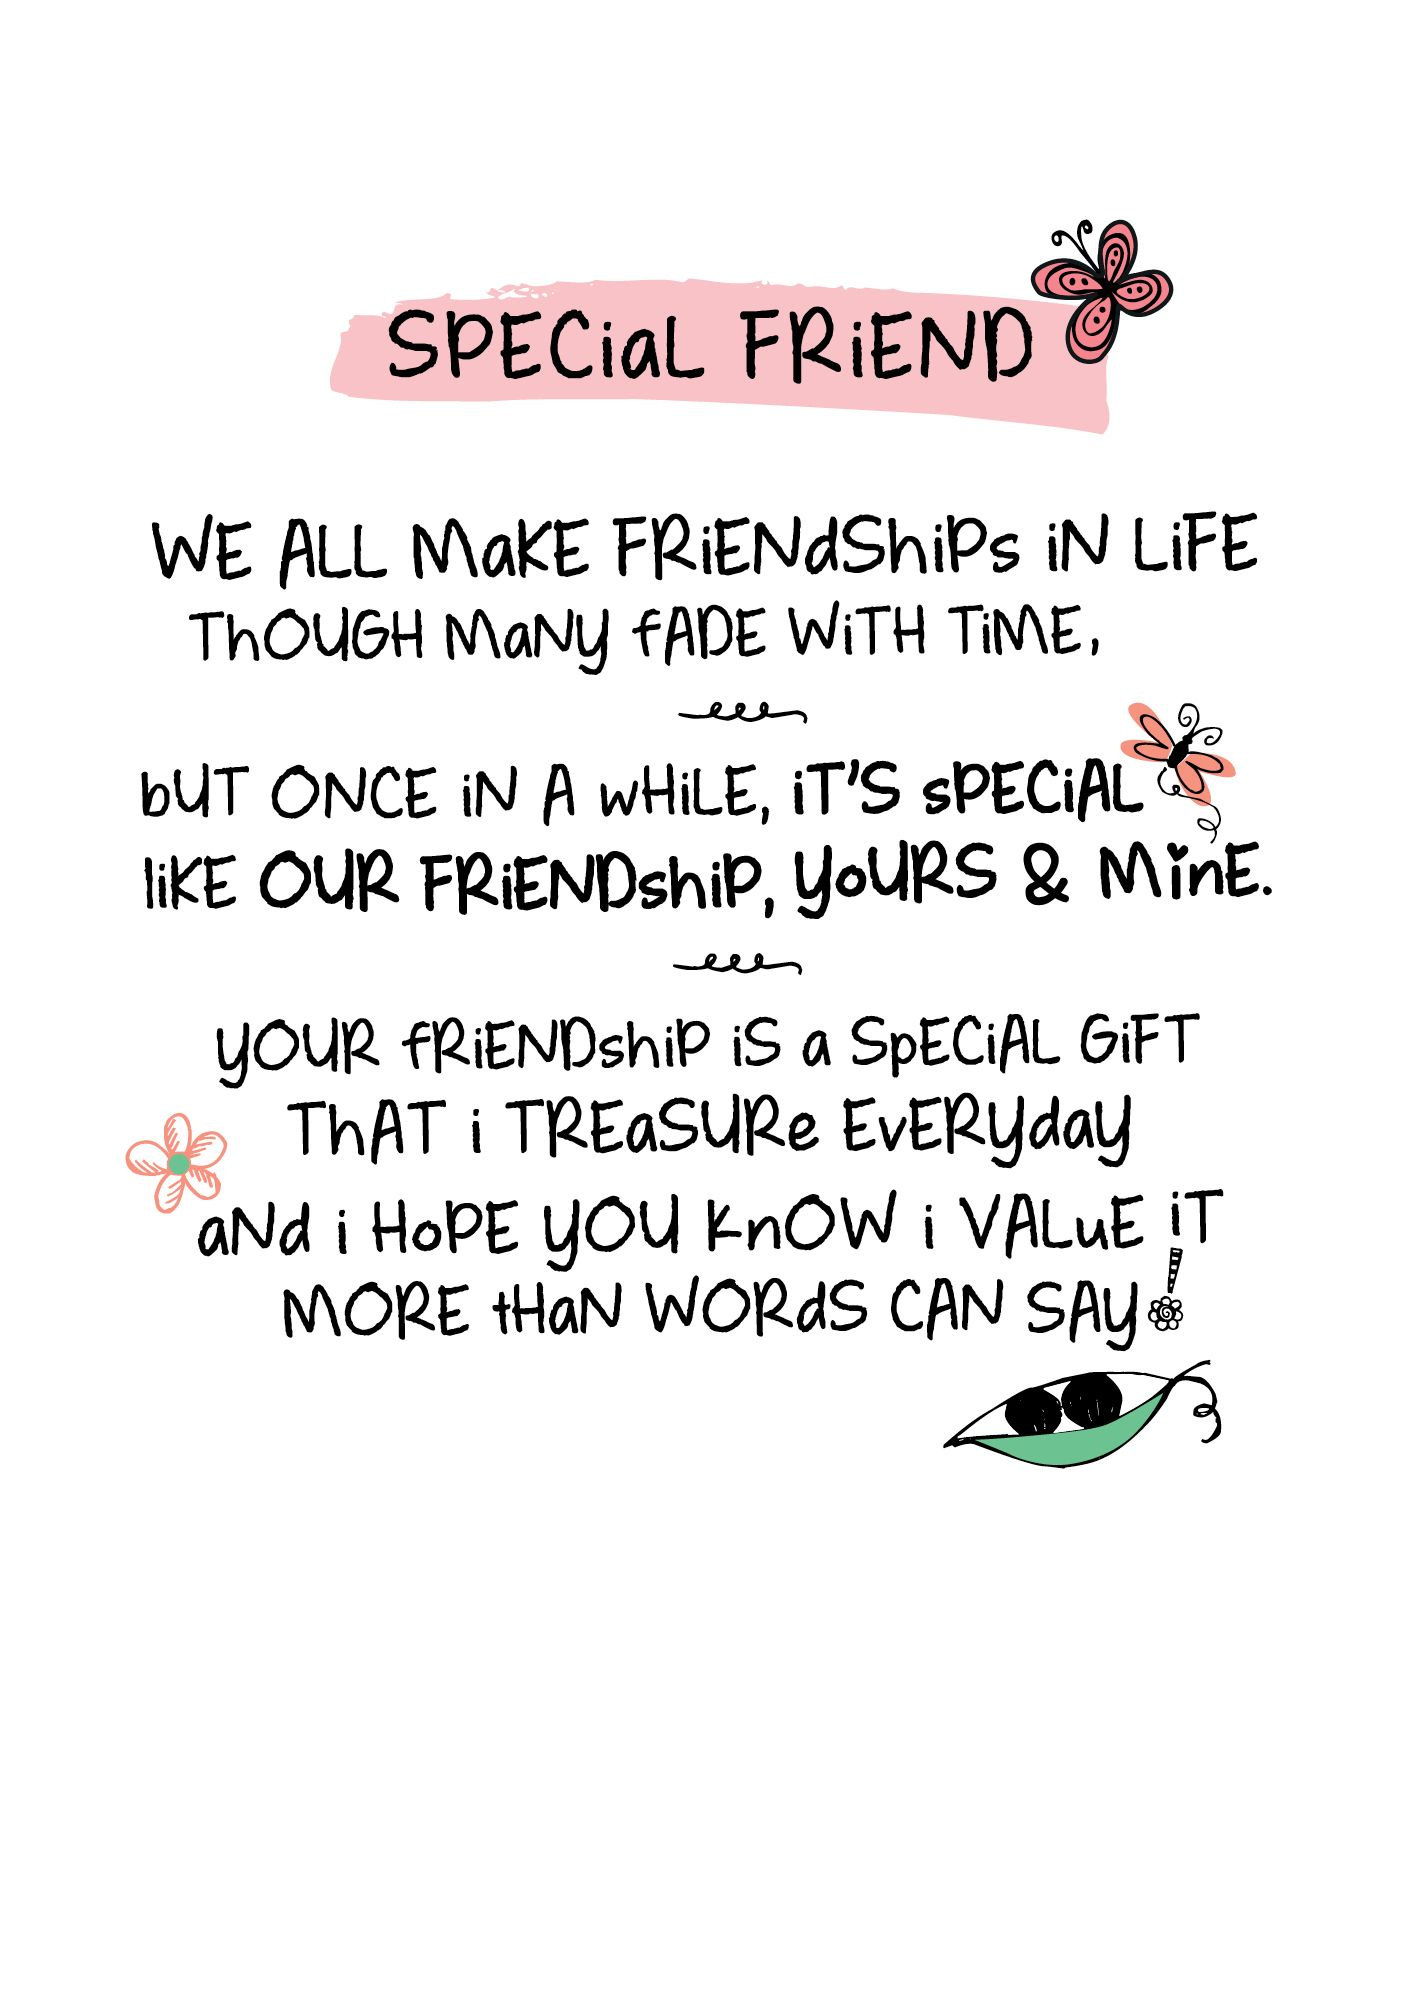 Special Friend Inspired Words Greeting Card Blank Inside Birthd Birthday Quotes Inspirational Happy Birthday Quotes For Friends Happy Birthday Wishes For Him